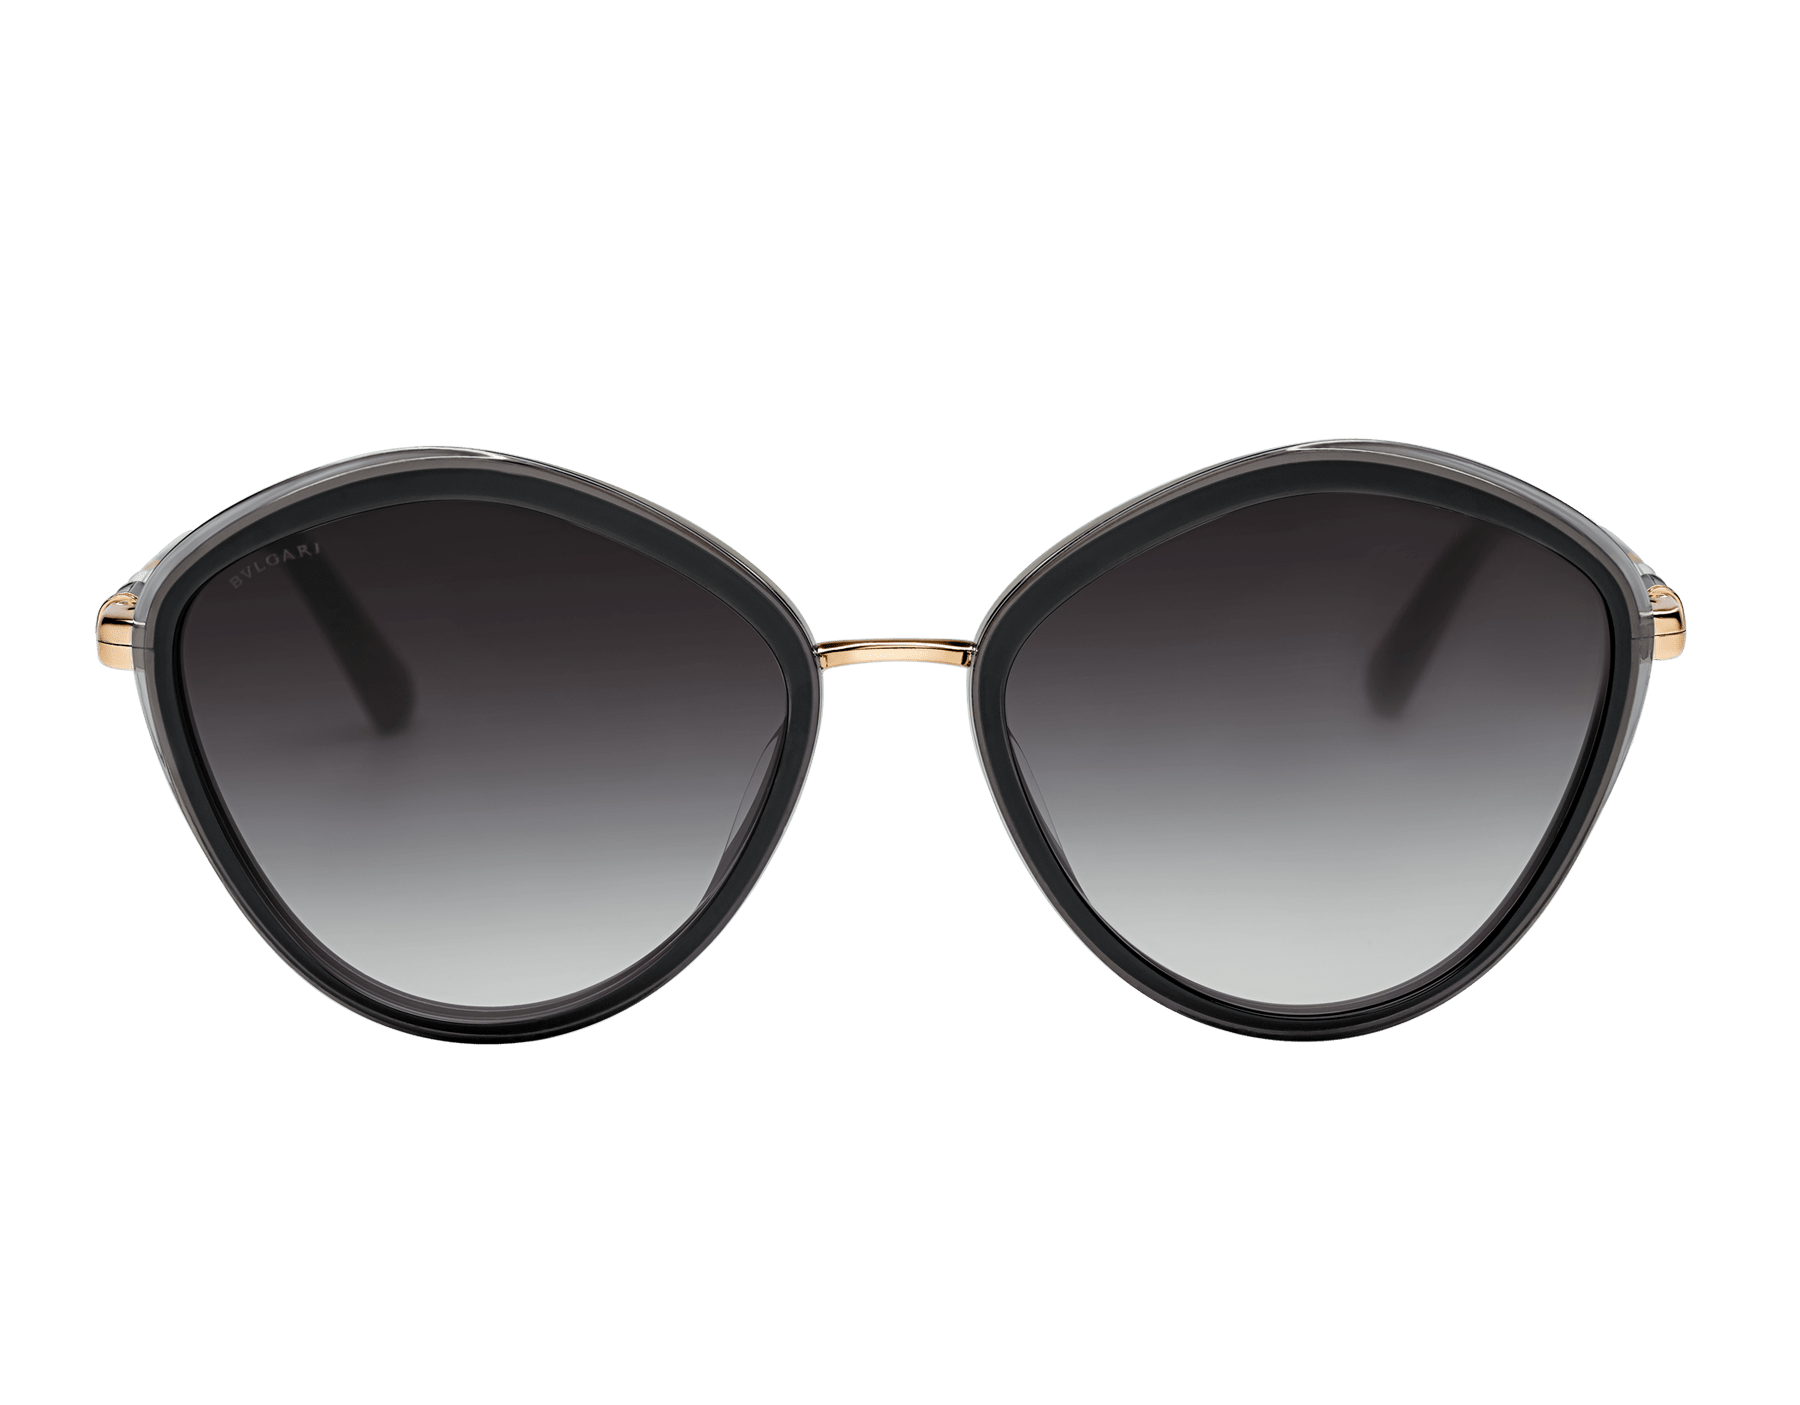 Bulgari Serpenti rounded metal sunglasses. 903988 image 2